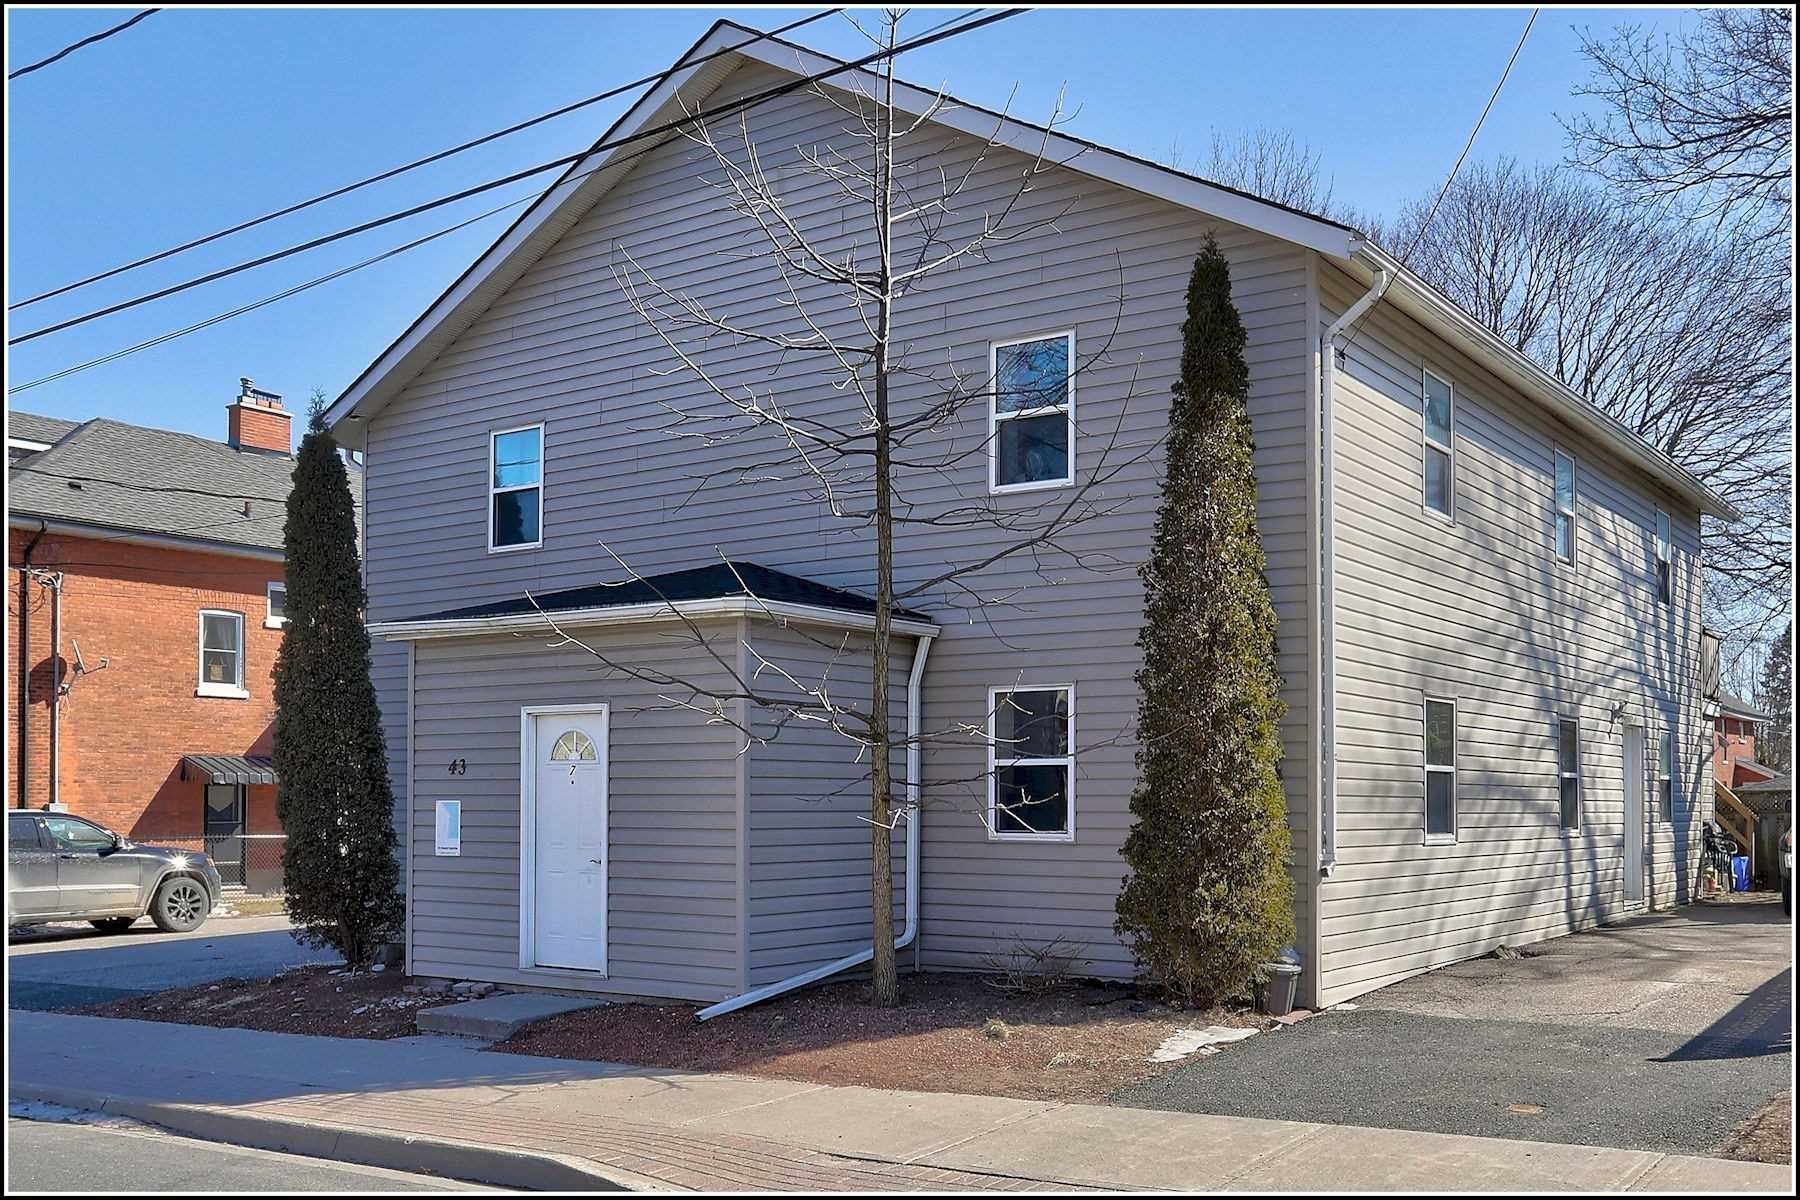 43 James St W, Cobourg, ON K9A 2J8 - MLS#: X5153468